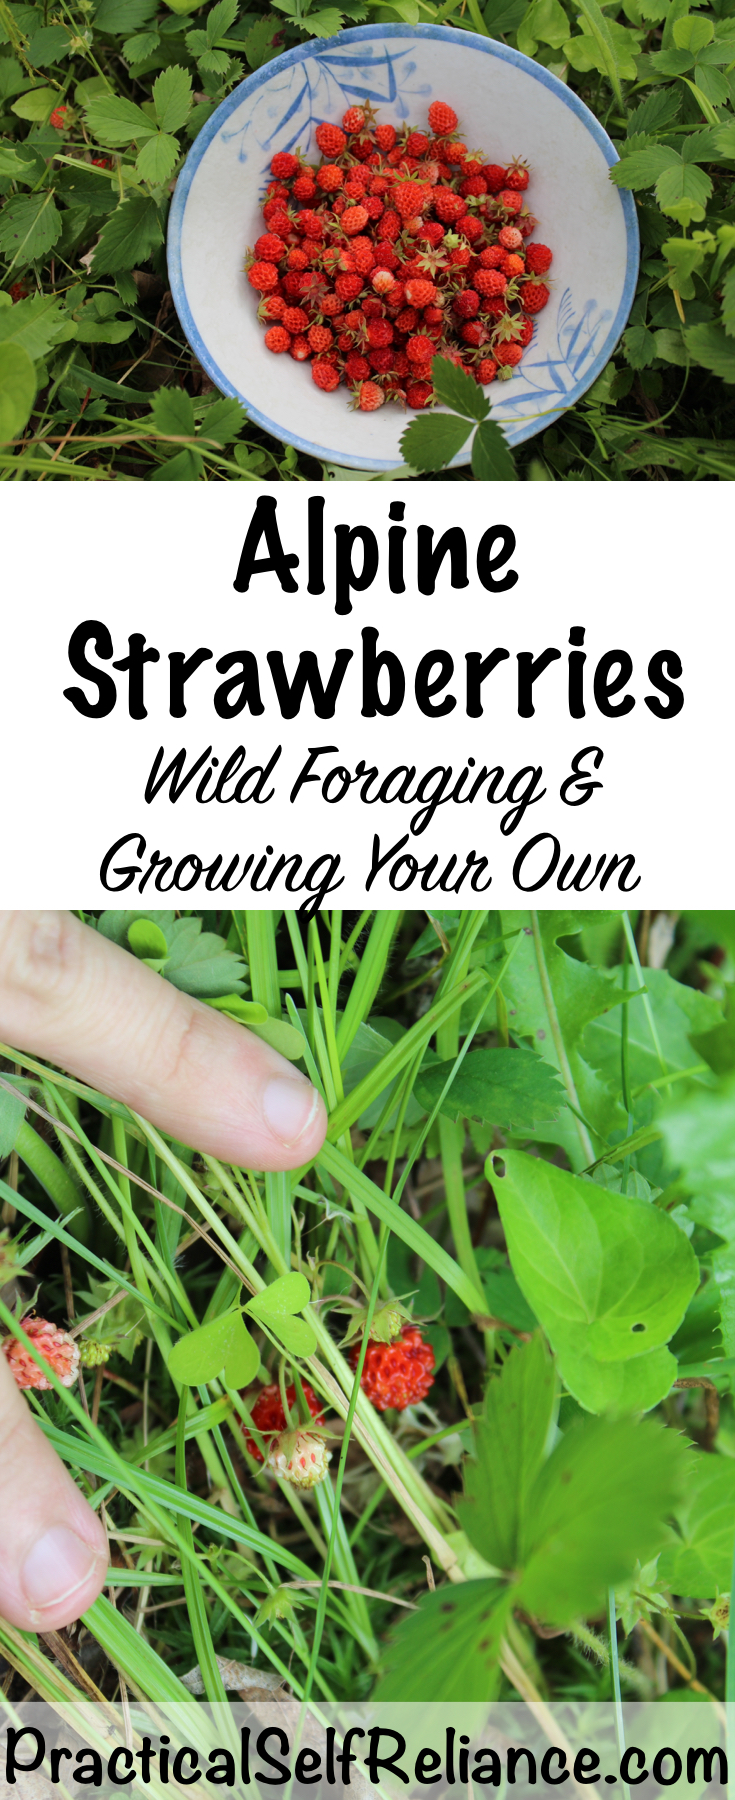 Alpine Strawberries: Wild Foraging and Growing Your Own